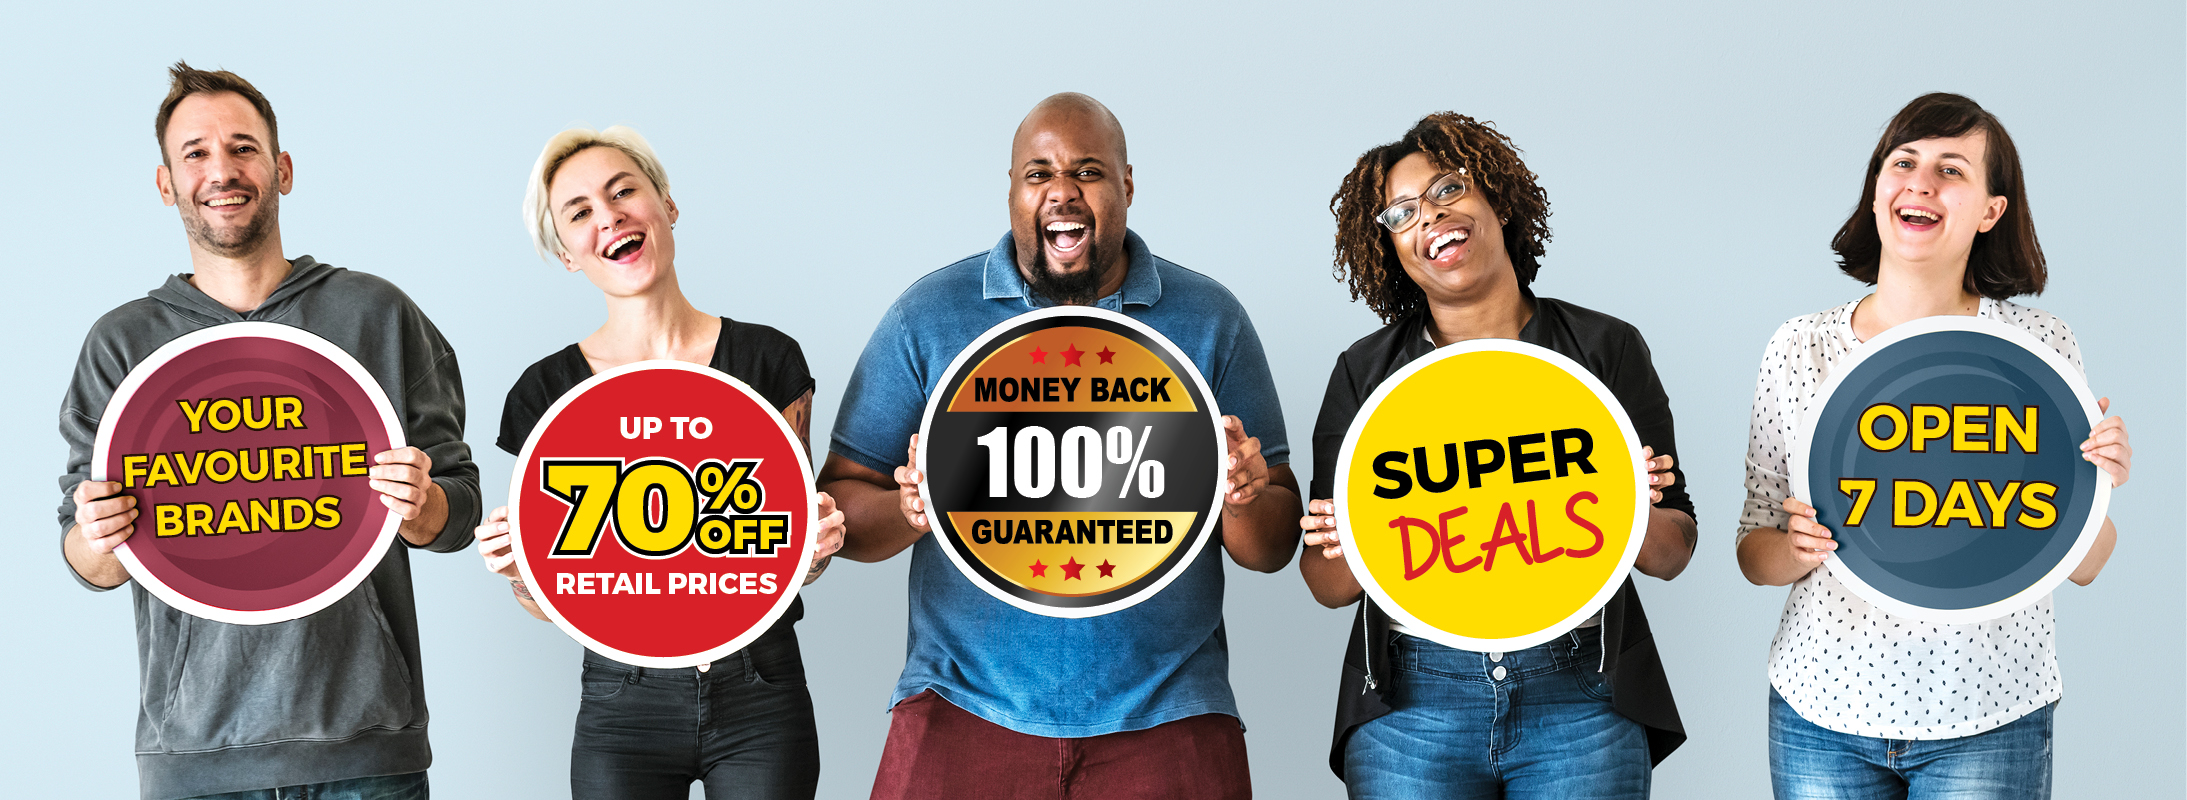 Savemore Supermarket Clearance Centre | Bargain Groceries